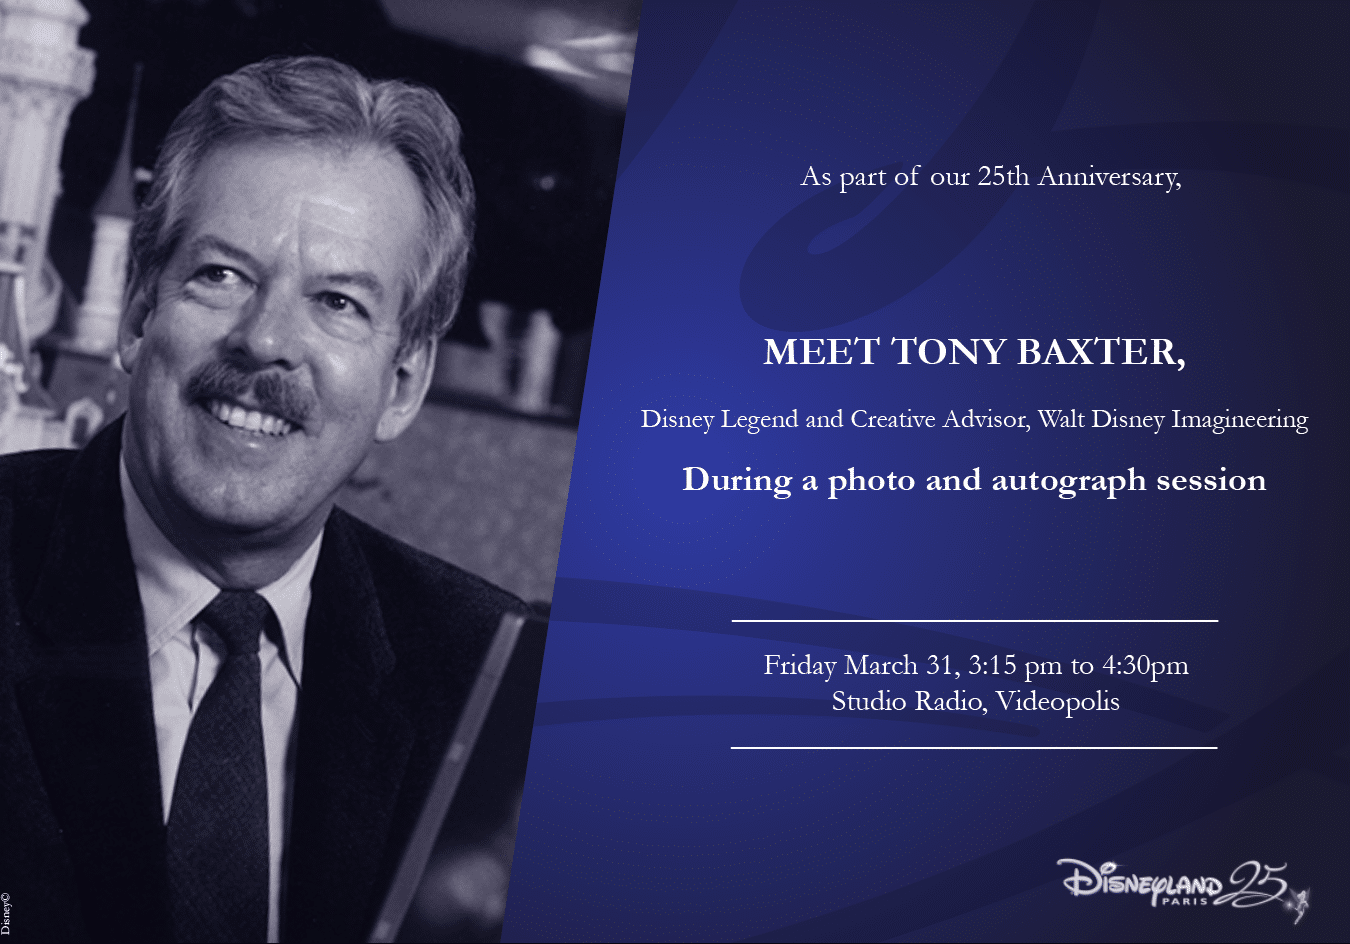 Tony Baxter - Disneyland Paris